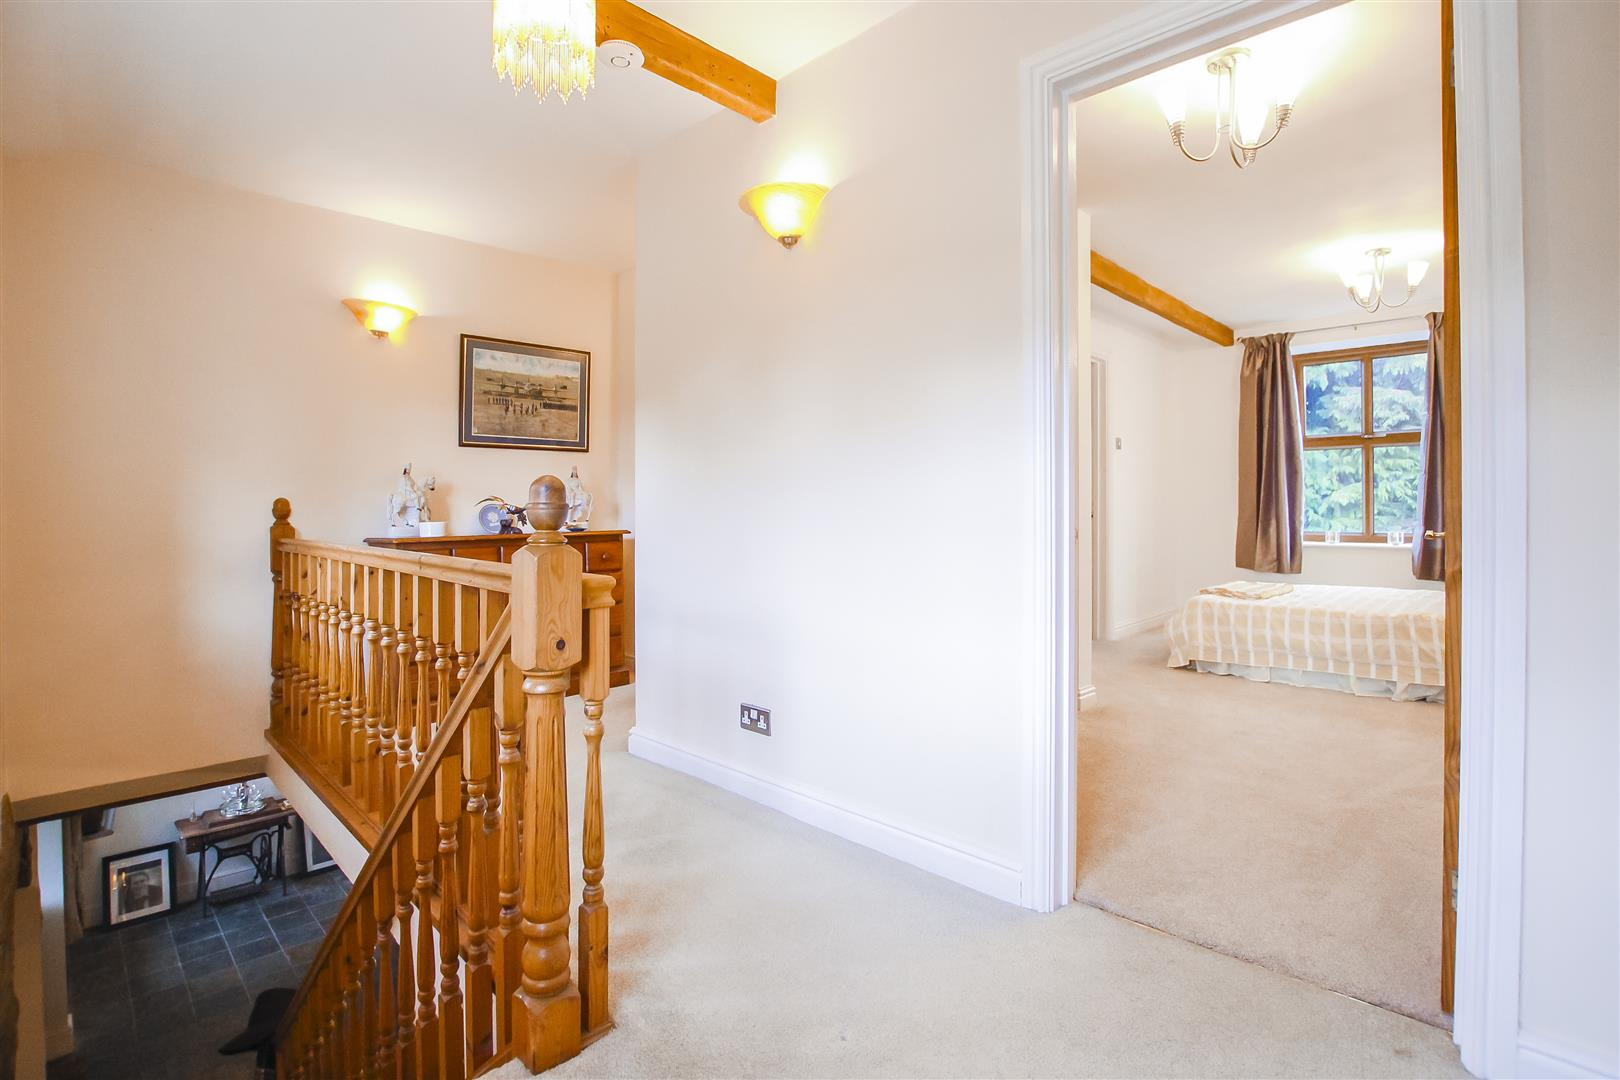 4 Bedroom Farmhouse For Sale - Image 39